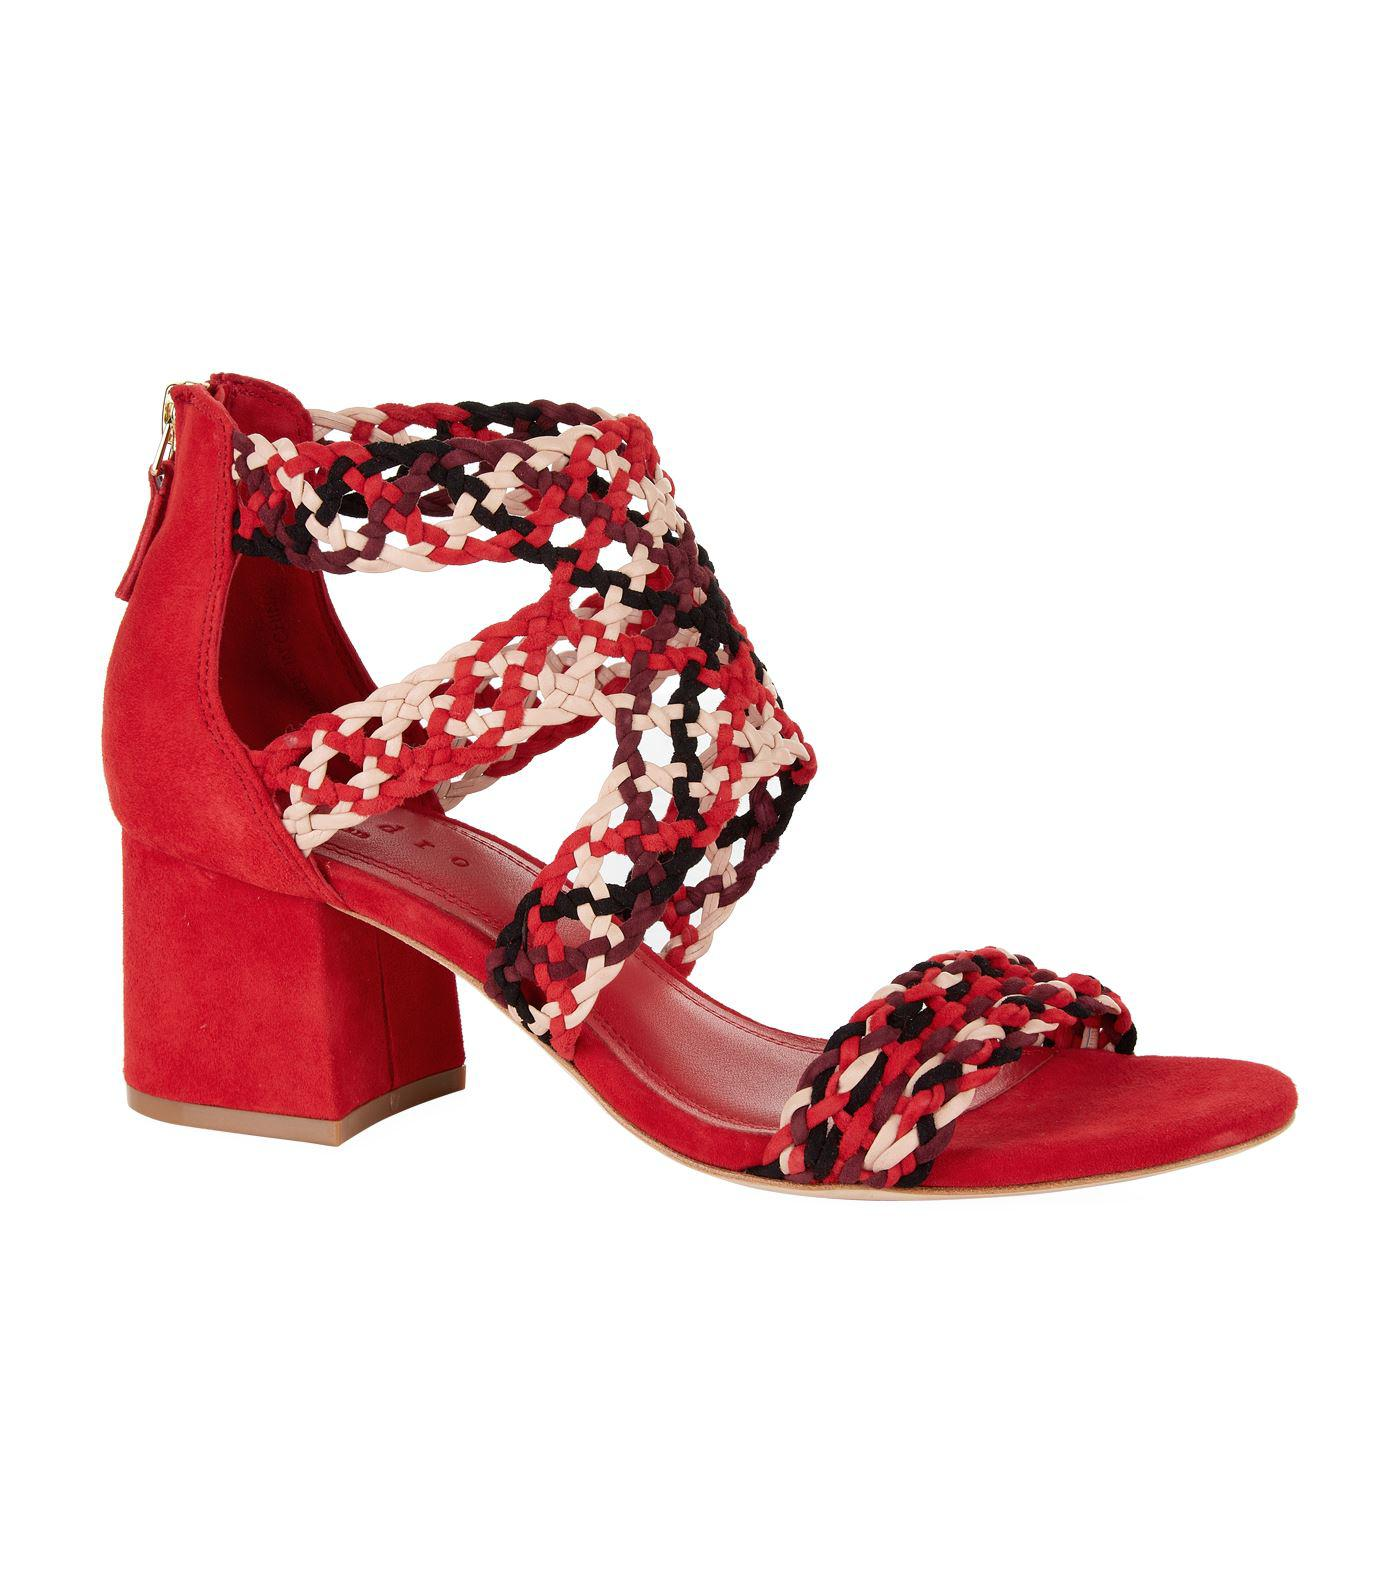 Sandro Lena Suede Sandals 600 in Red - Lyst